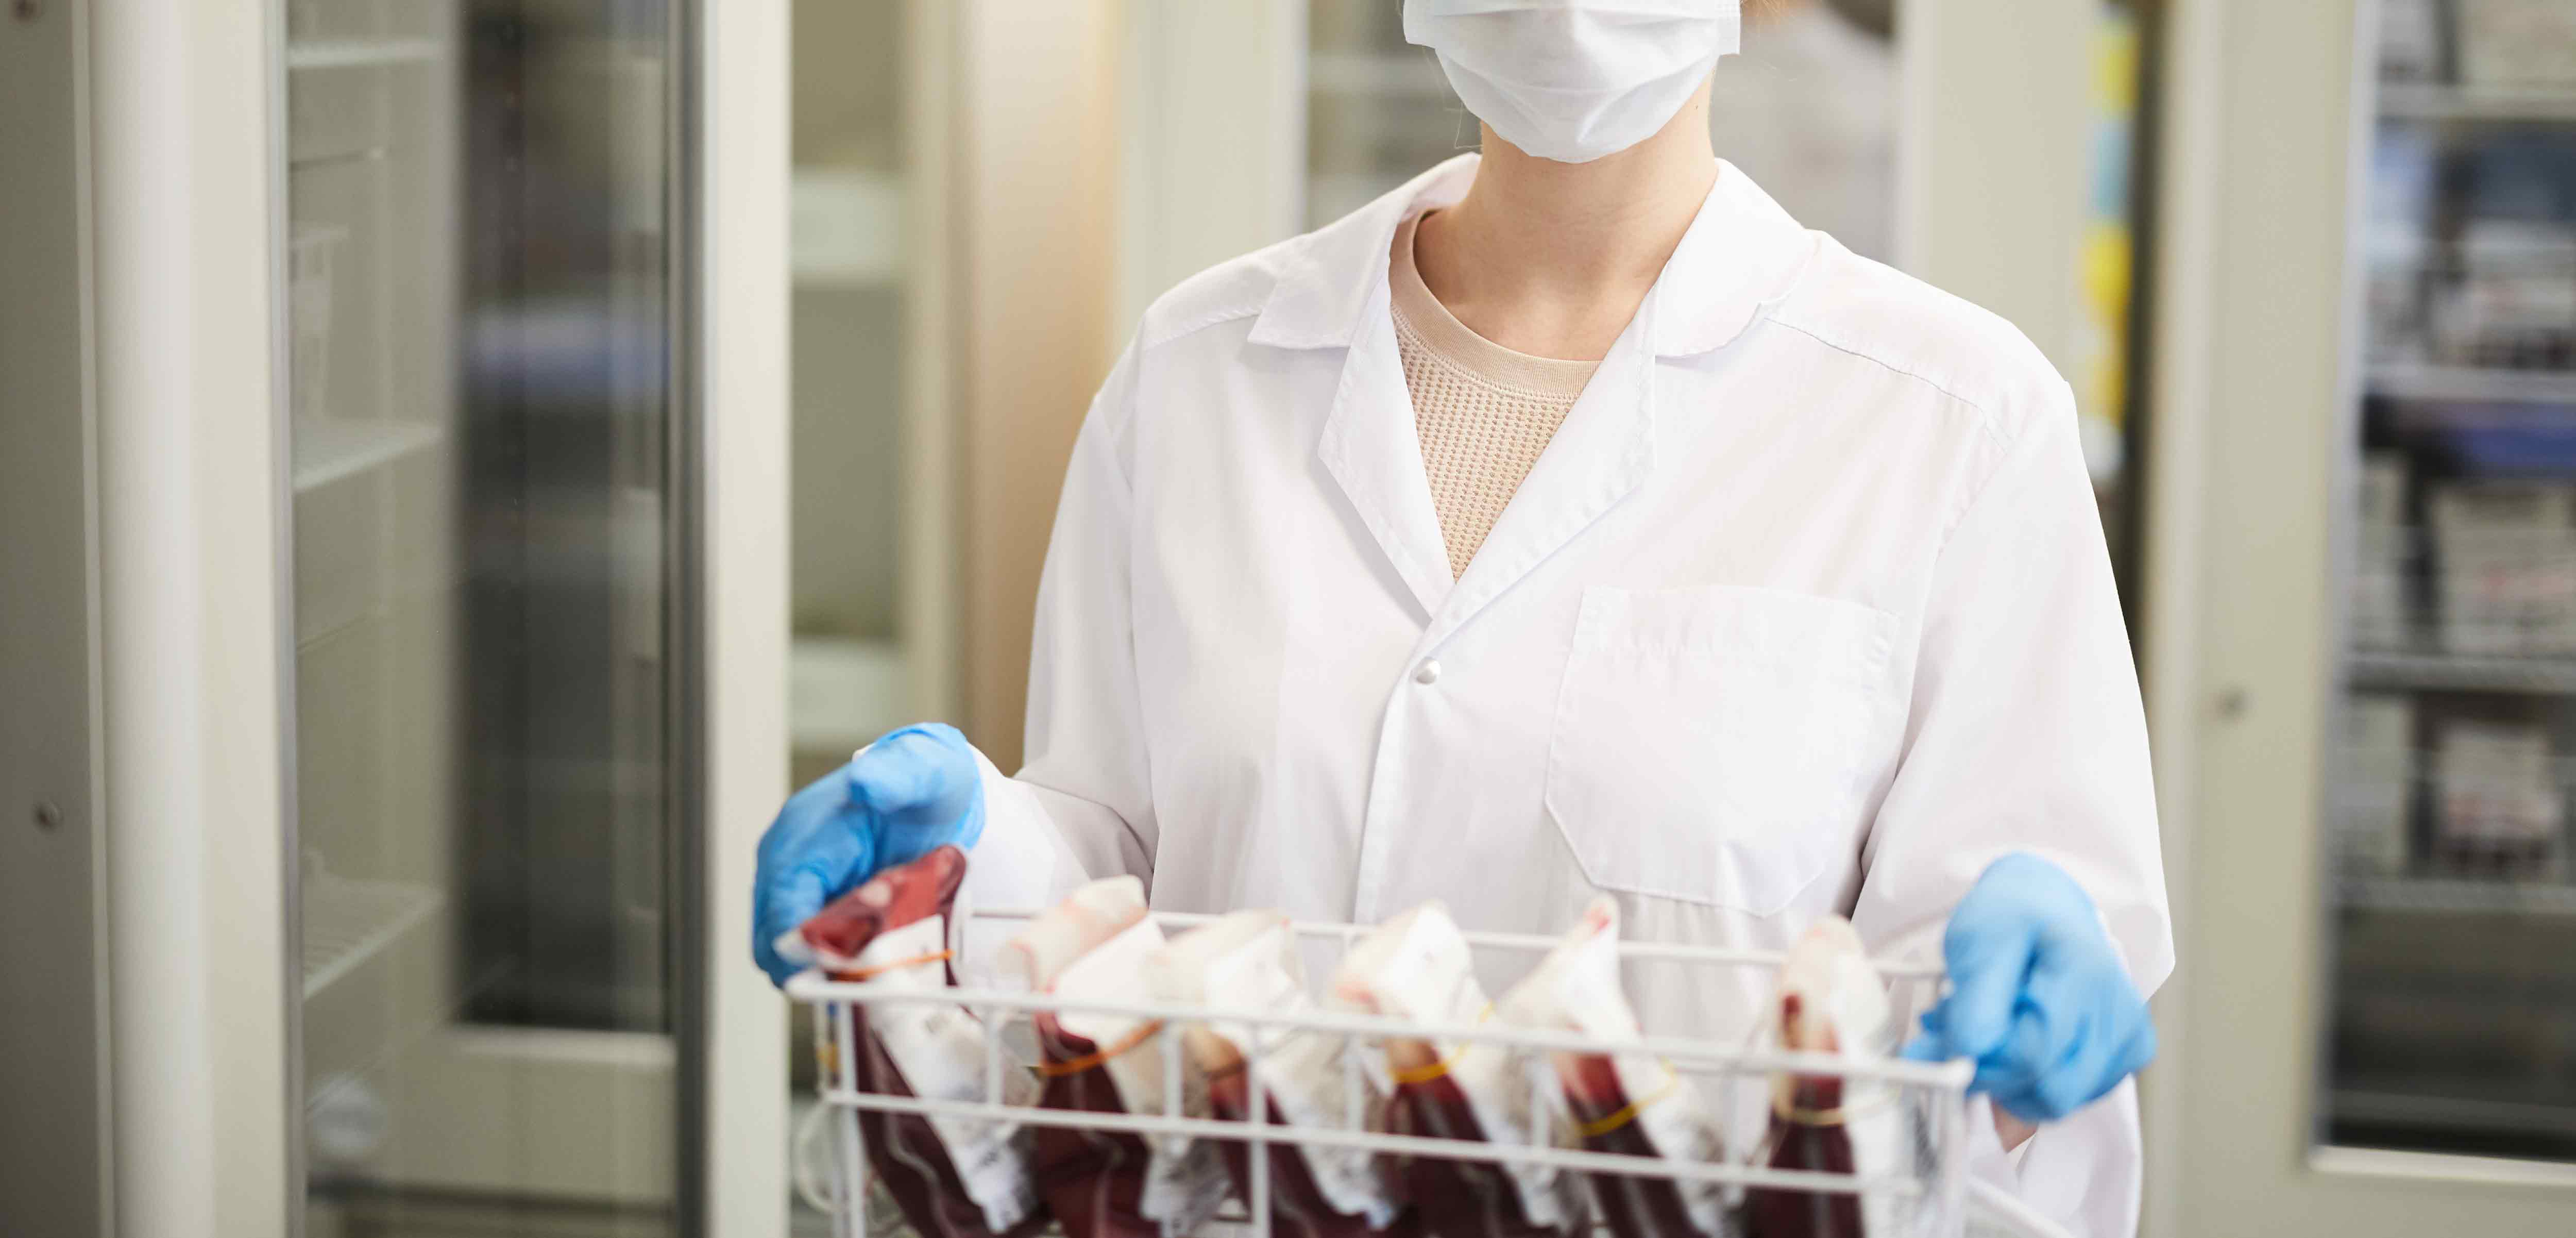 portrait-nurse-mask-white-coat-carrying-box-with-blood-samples-lab